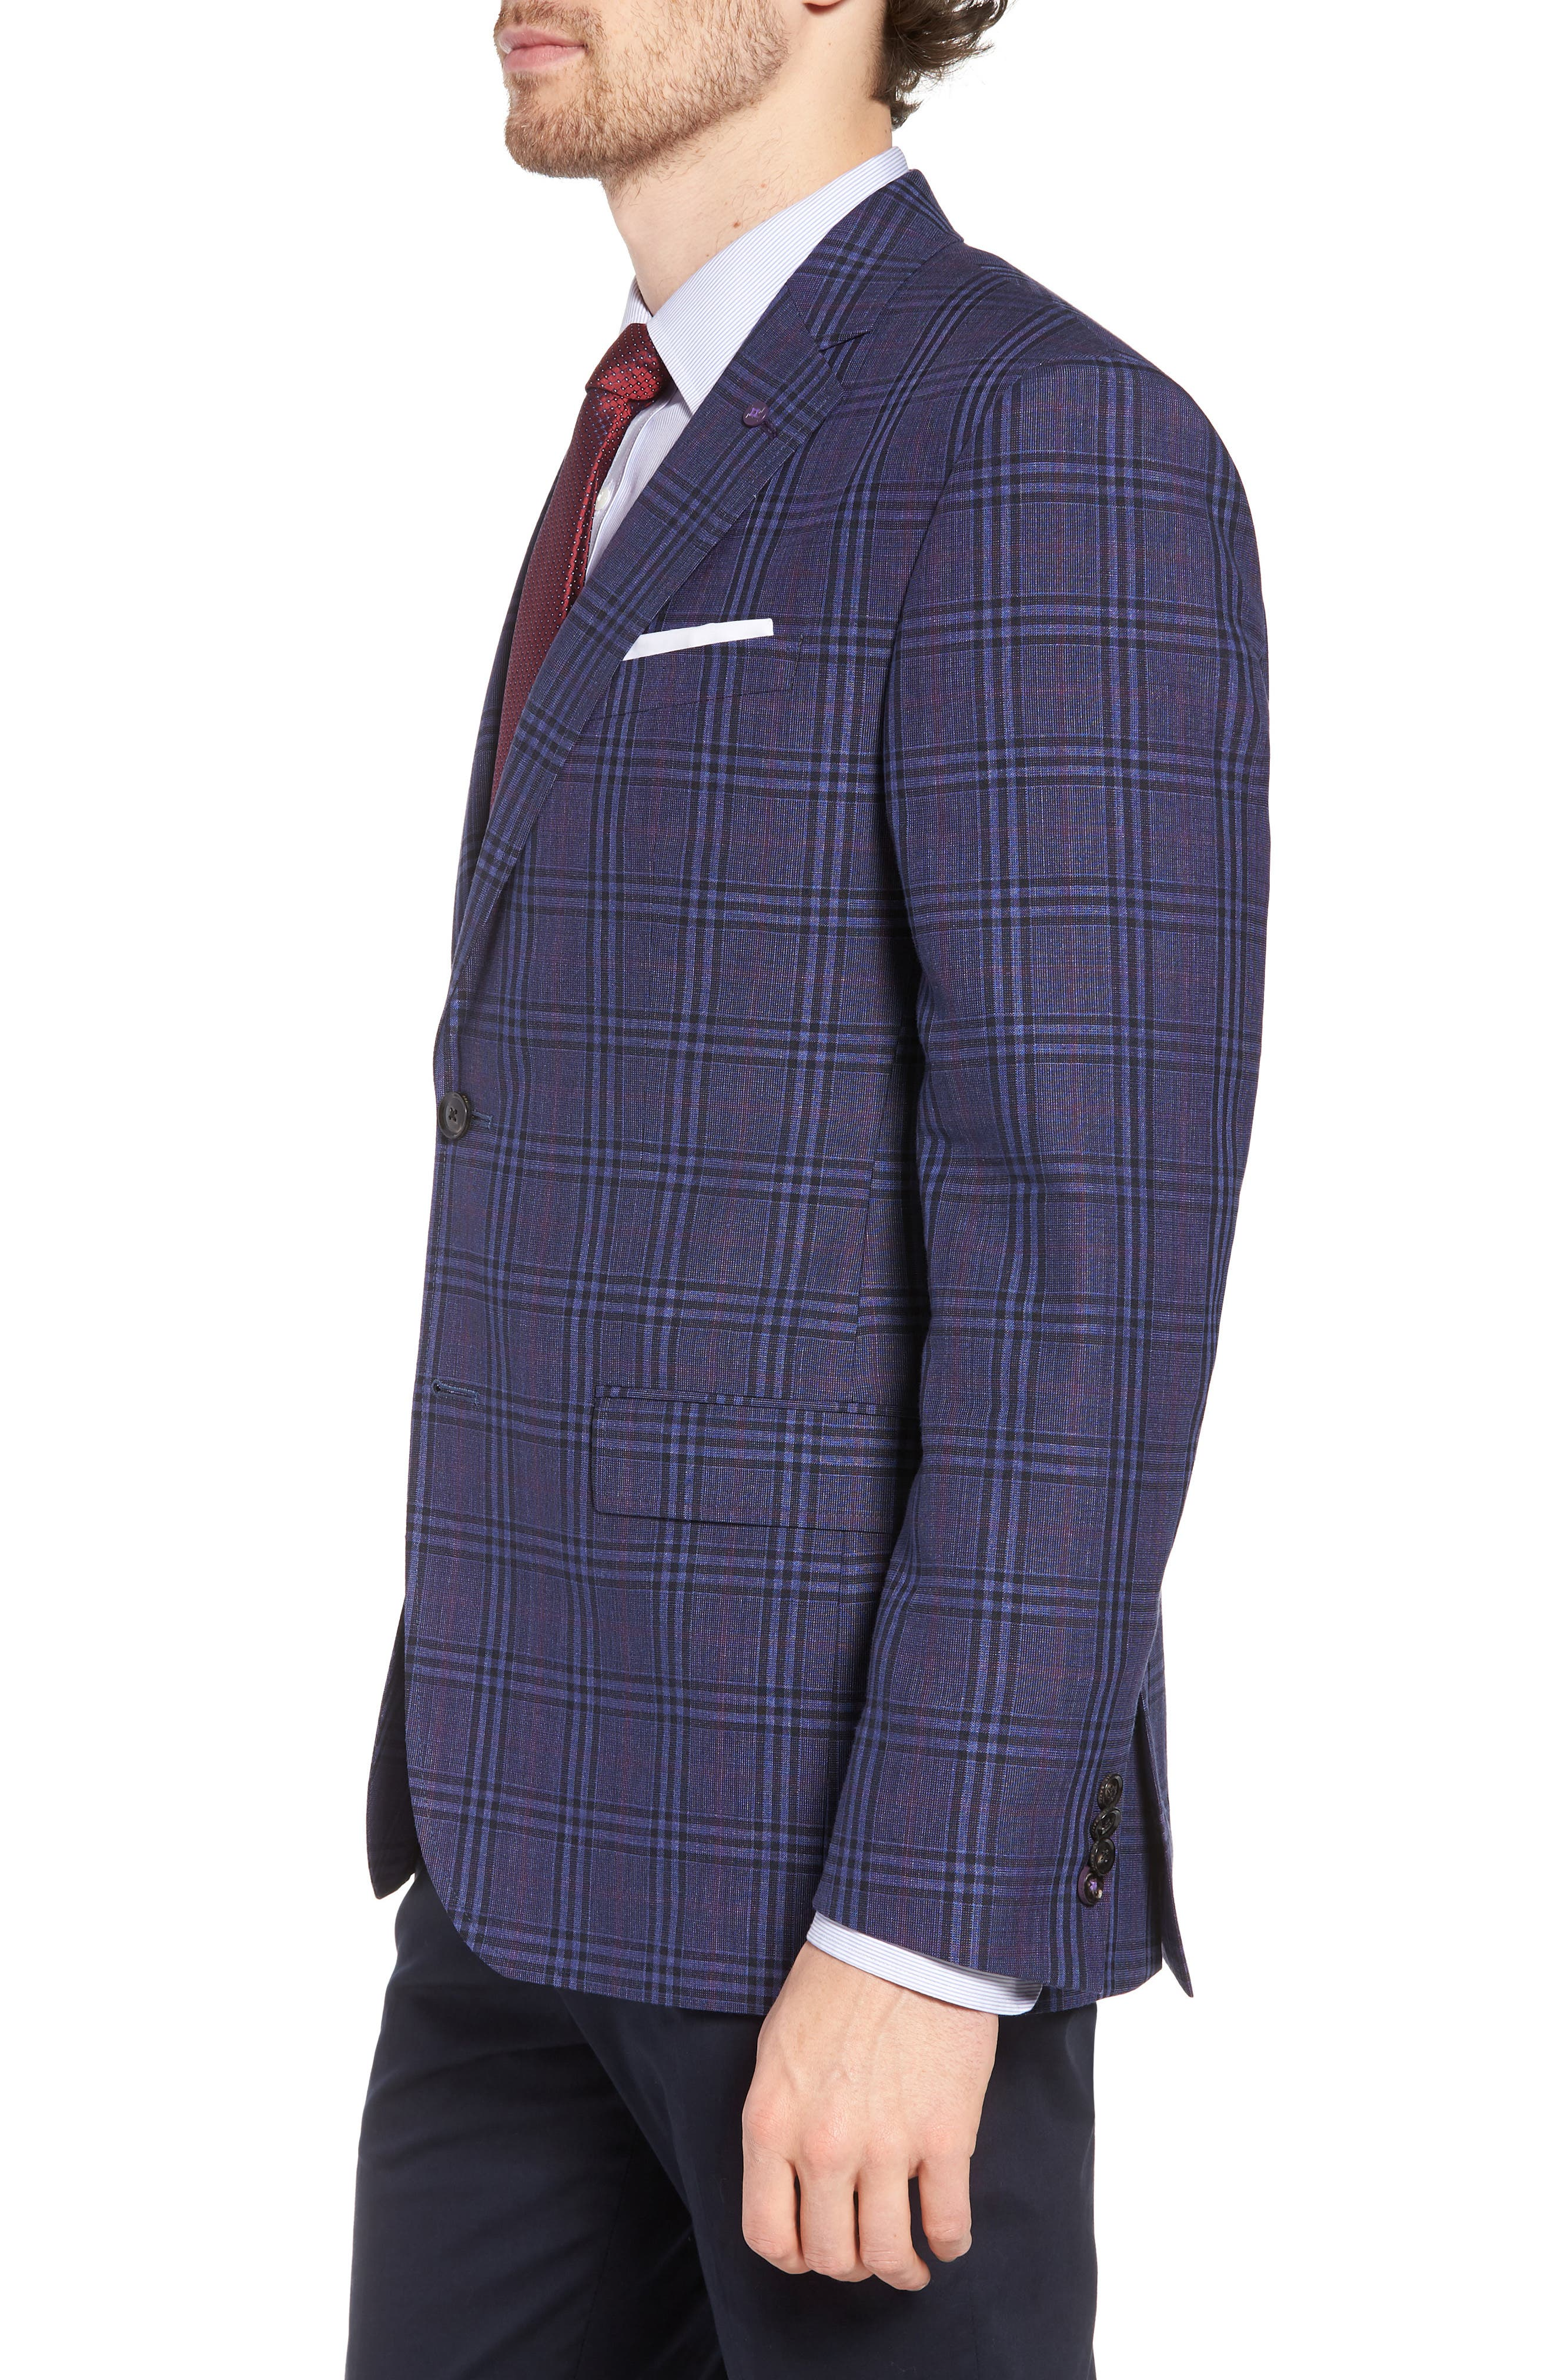 Alternate Image 3  - Ted Baker London Jay Trim Fit Plaid Wool & Linen Sport Coat